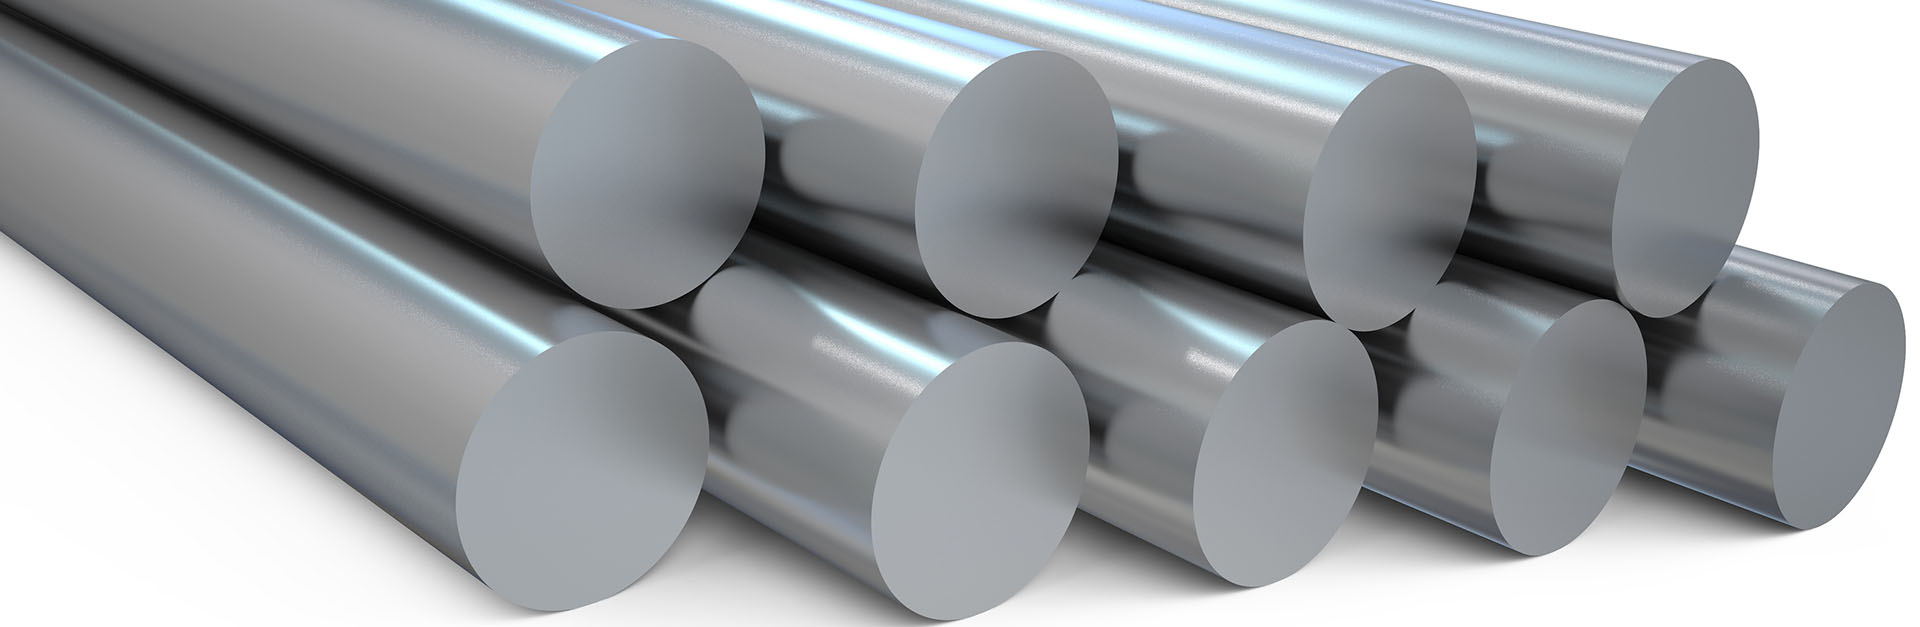 Metric Sized Metals And Steels Metric Metal Parker Steel